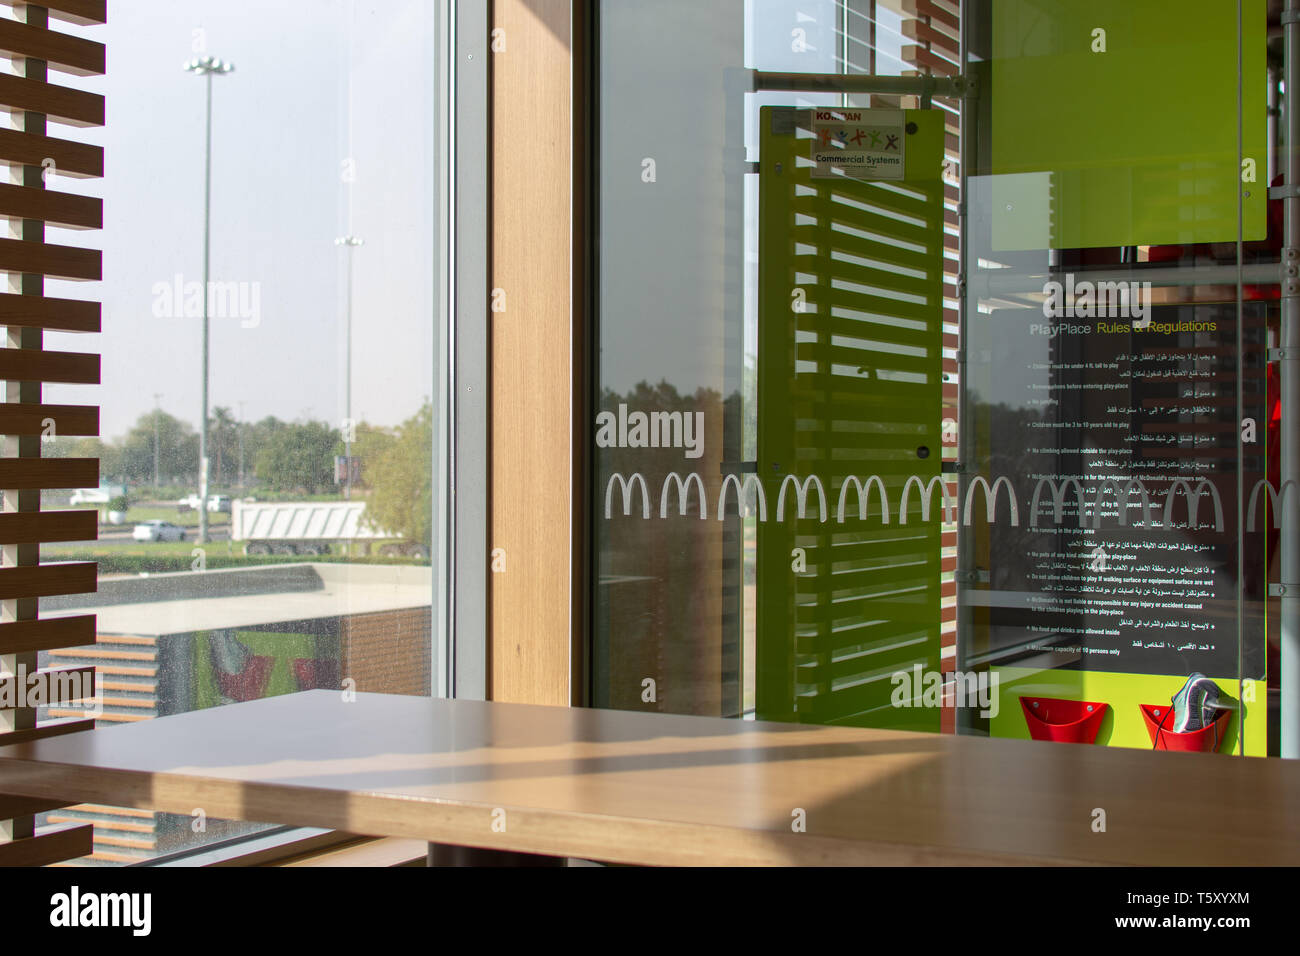 'Al Ain, Abu Dhabi/United Arab Emirates - 4/3/2019 - McDonalds Golden Arches Logo on glass by a play place or playground in an empty restaurant lookin - Stock Image